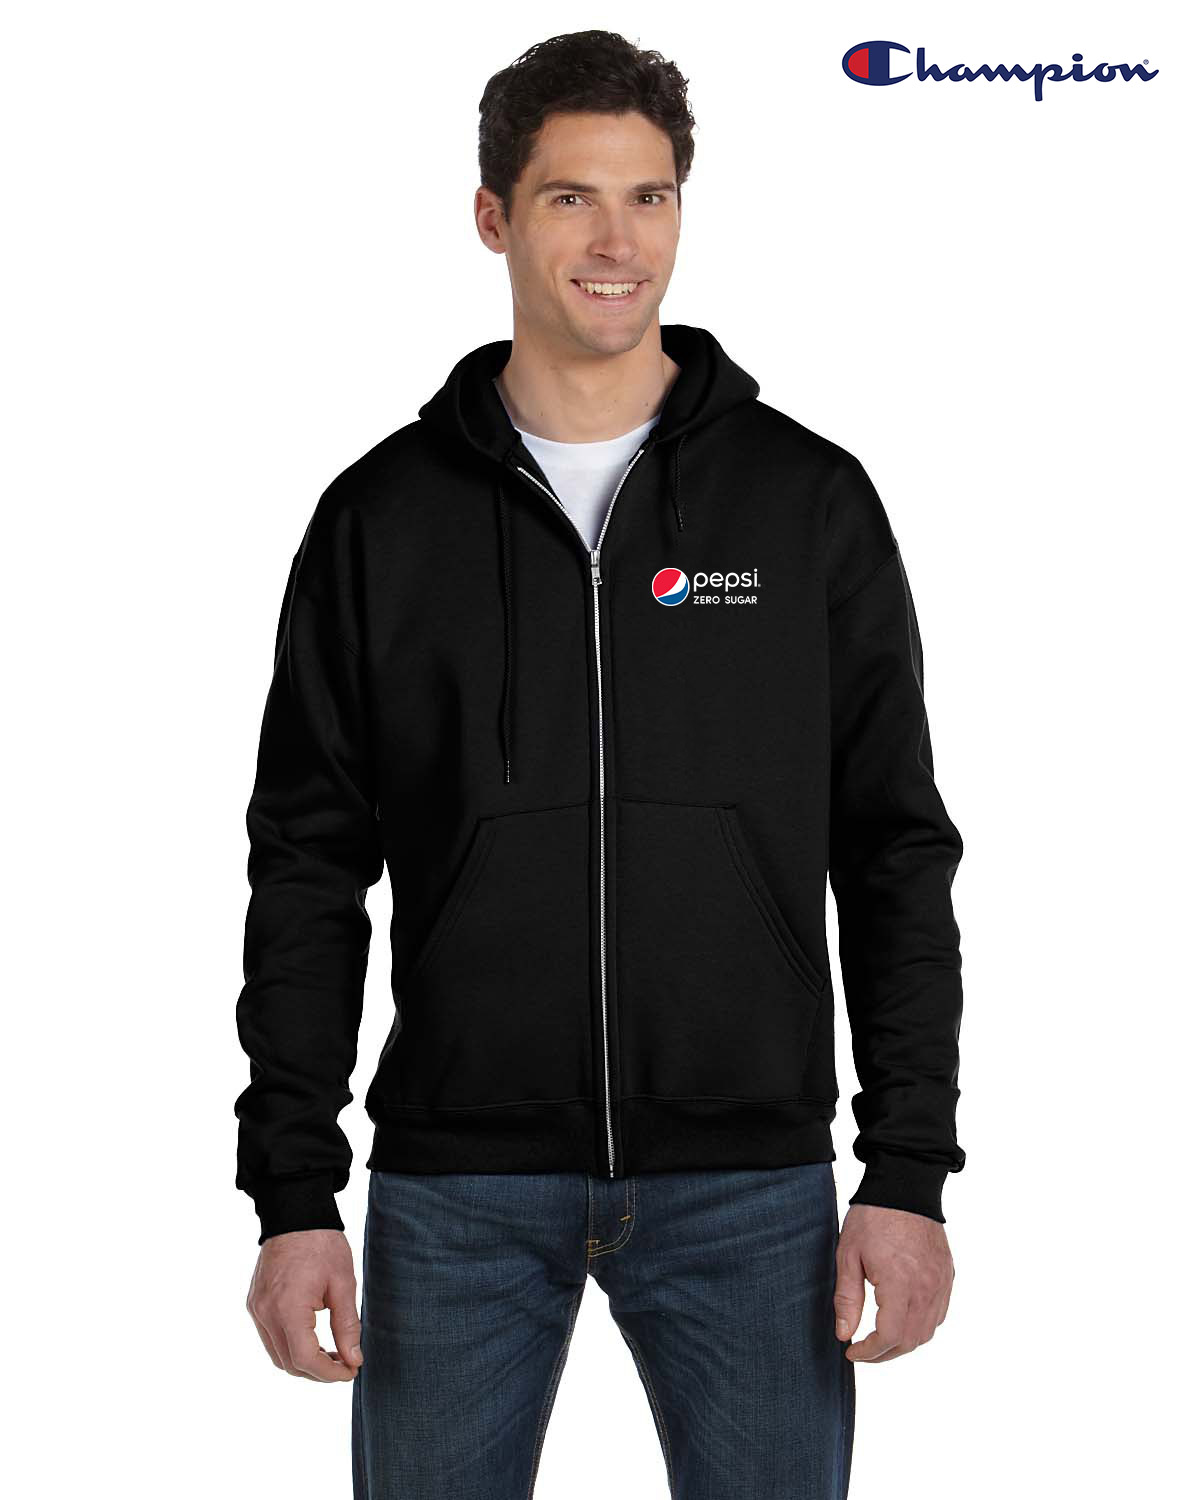 Champion Adult 9 oz. Double Dry Eco® Full-Zip Hooded Sweatshirt